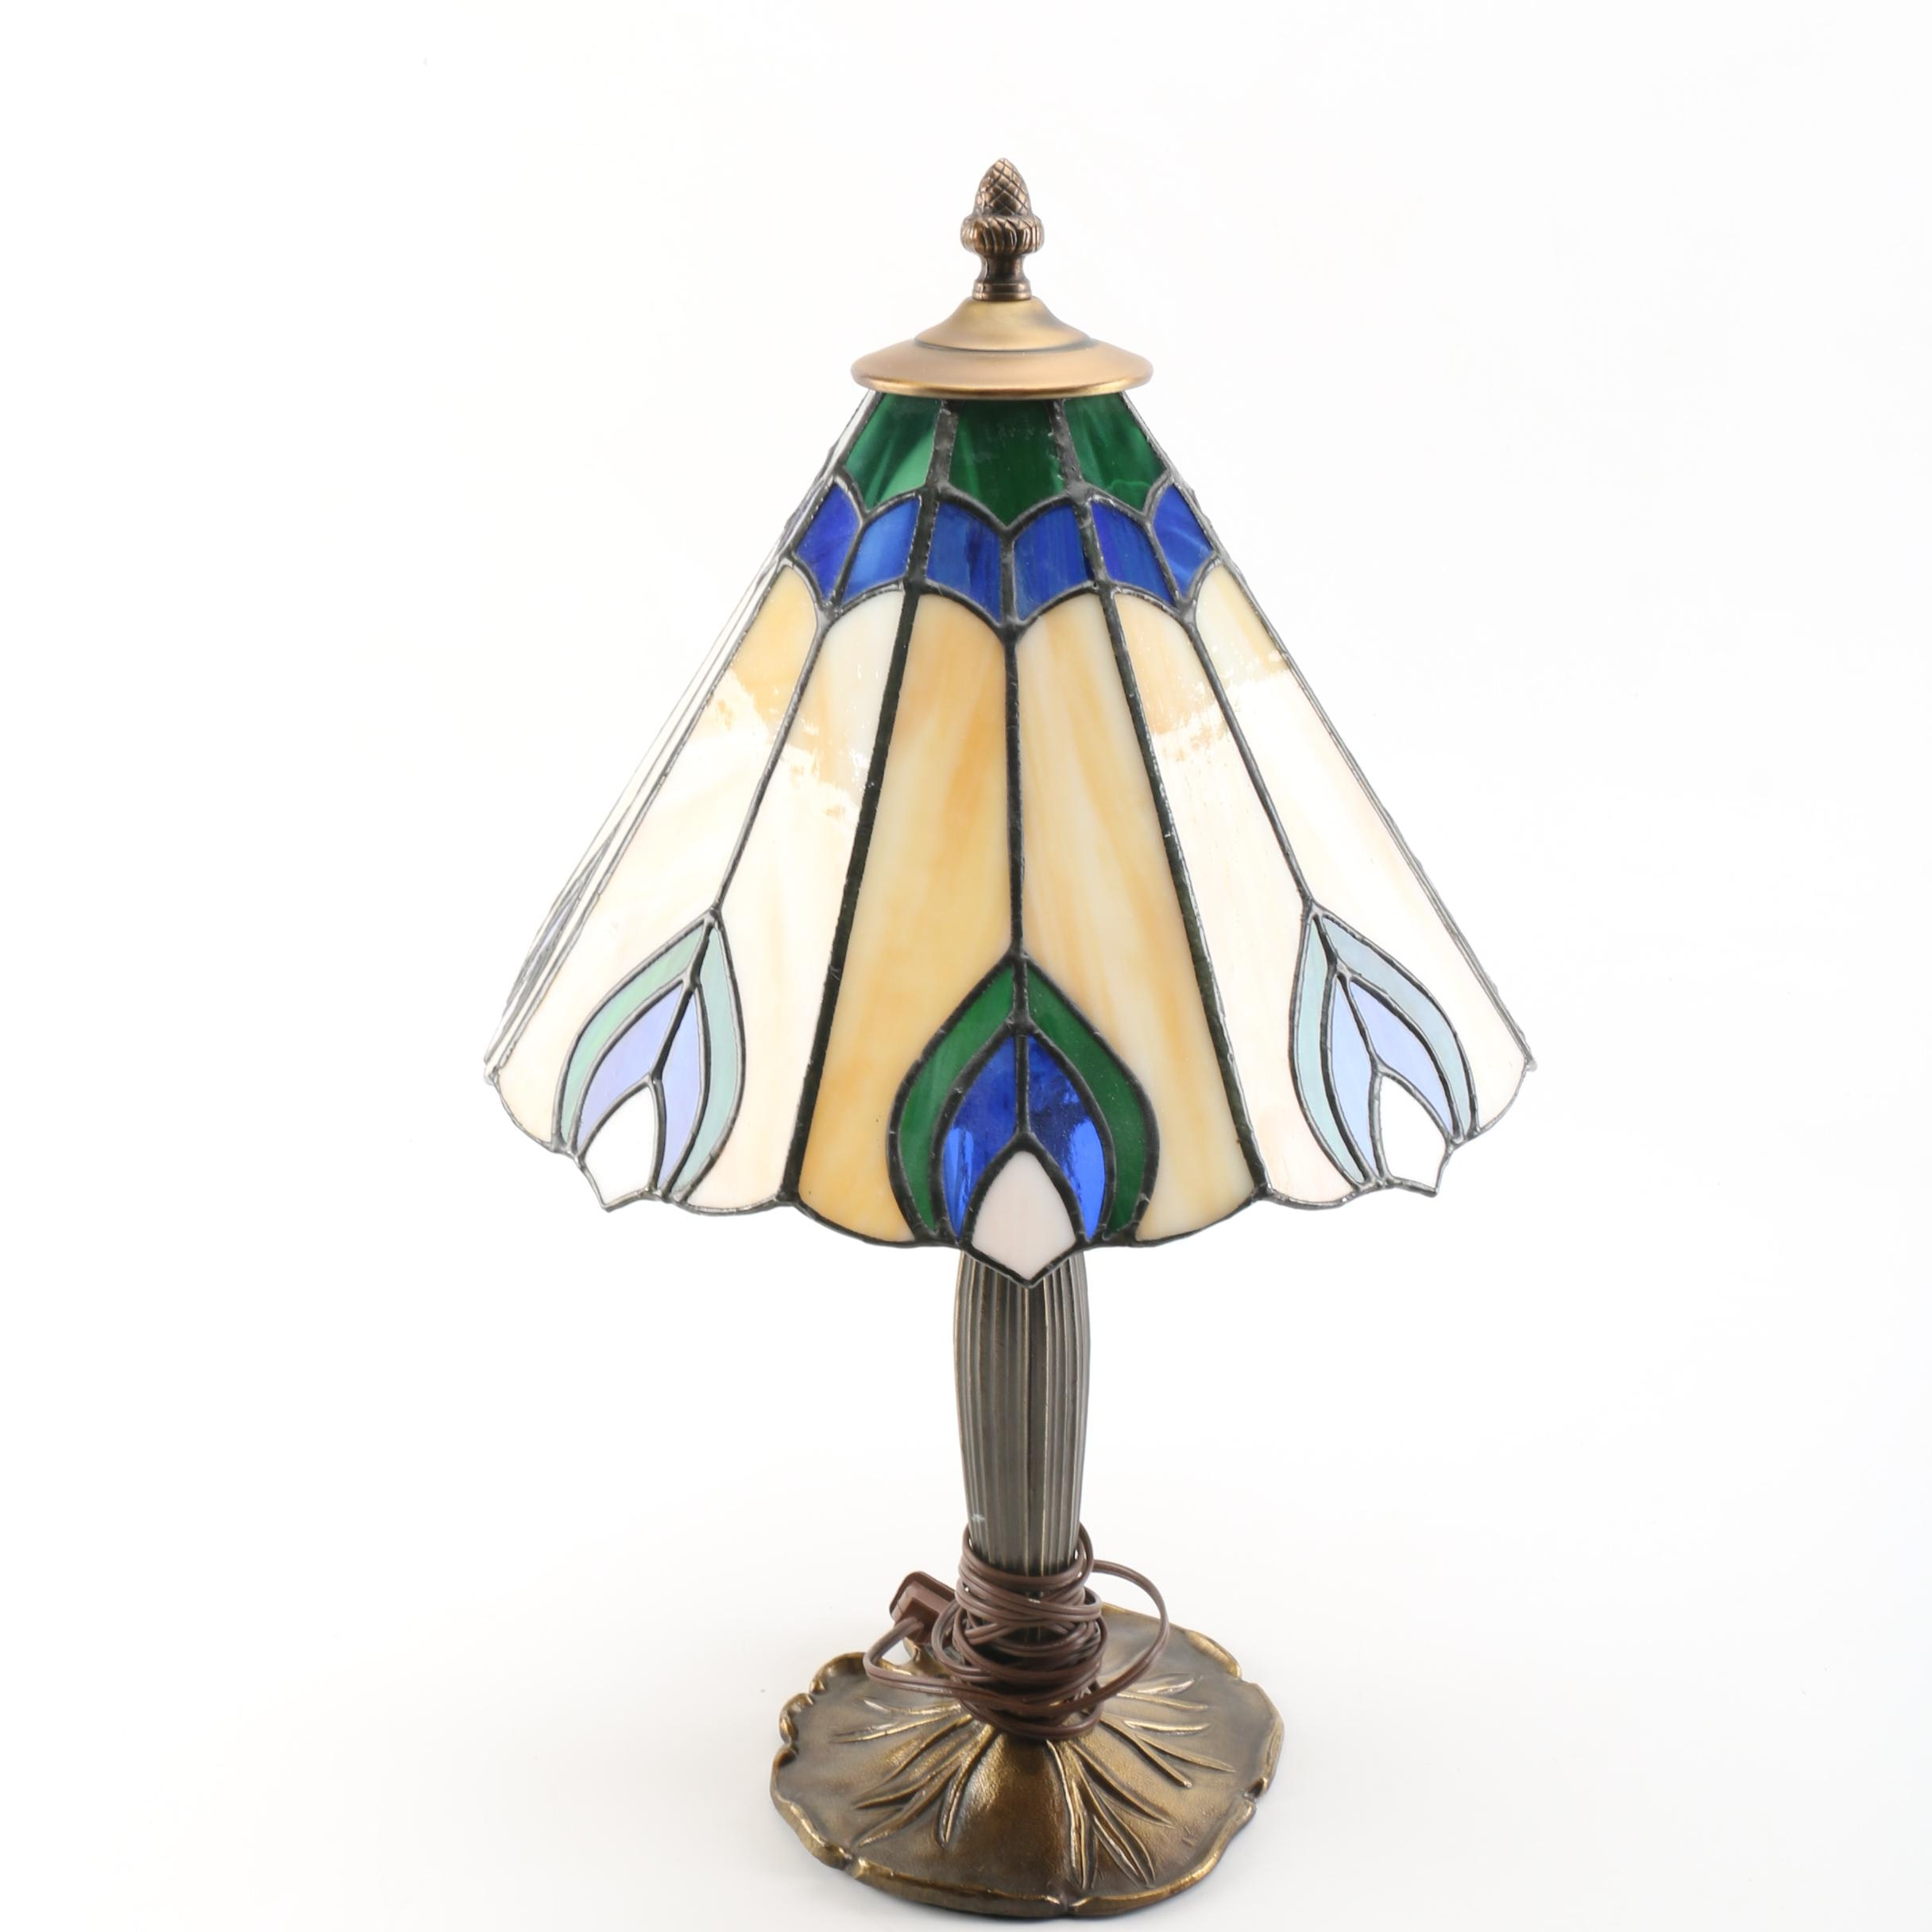 Tiffany Style Accent Lamp with Shade